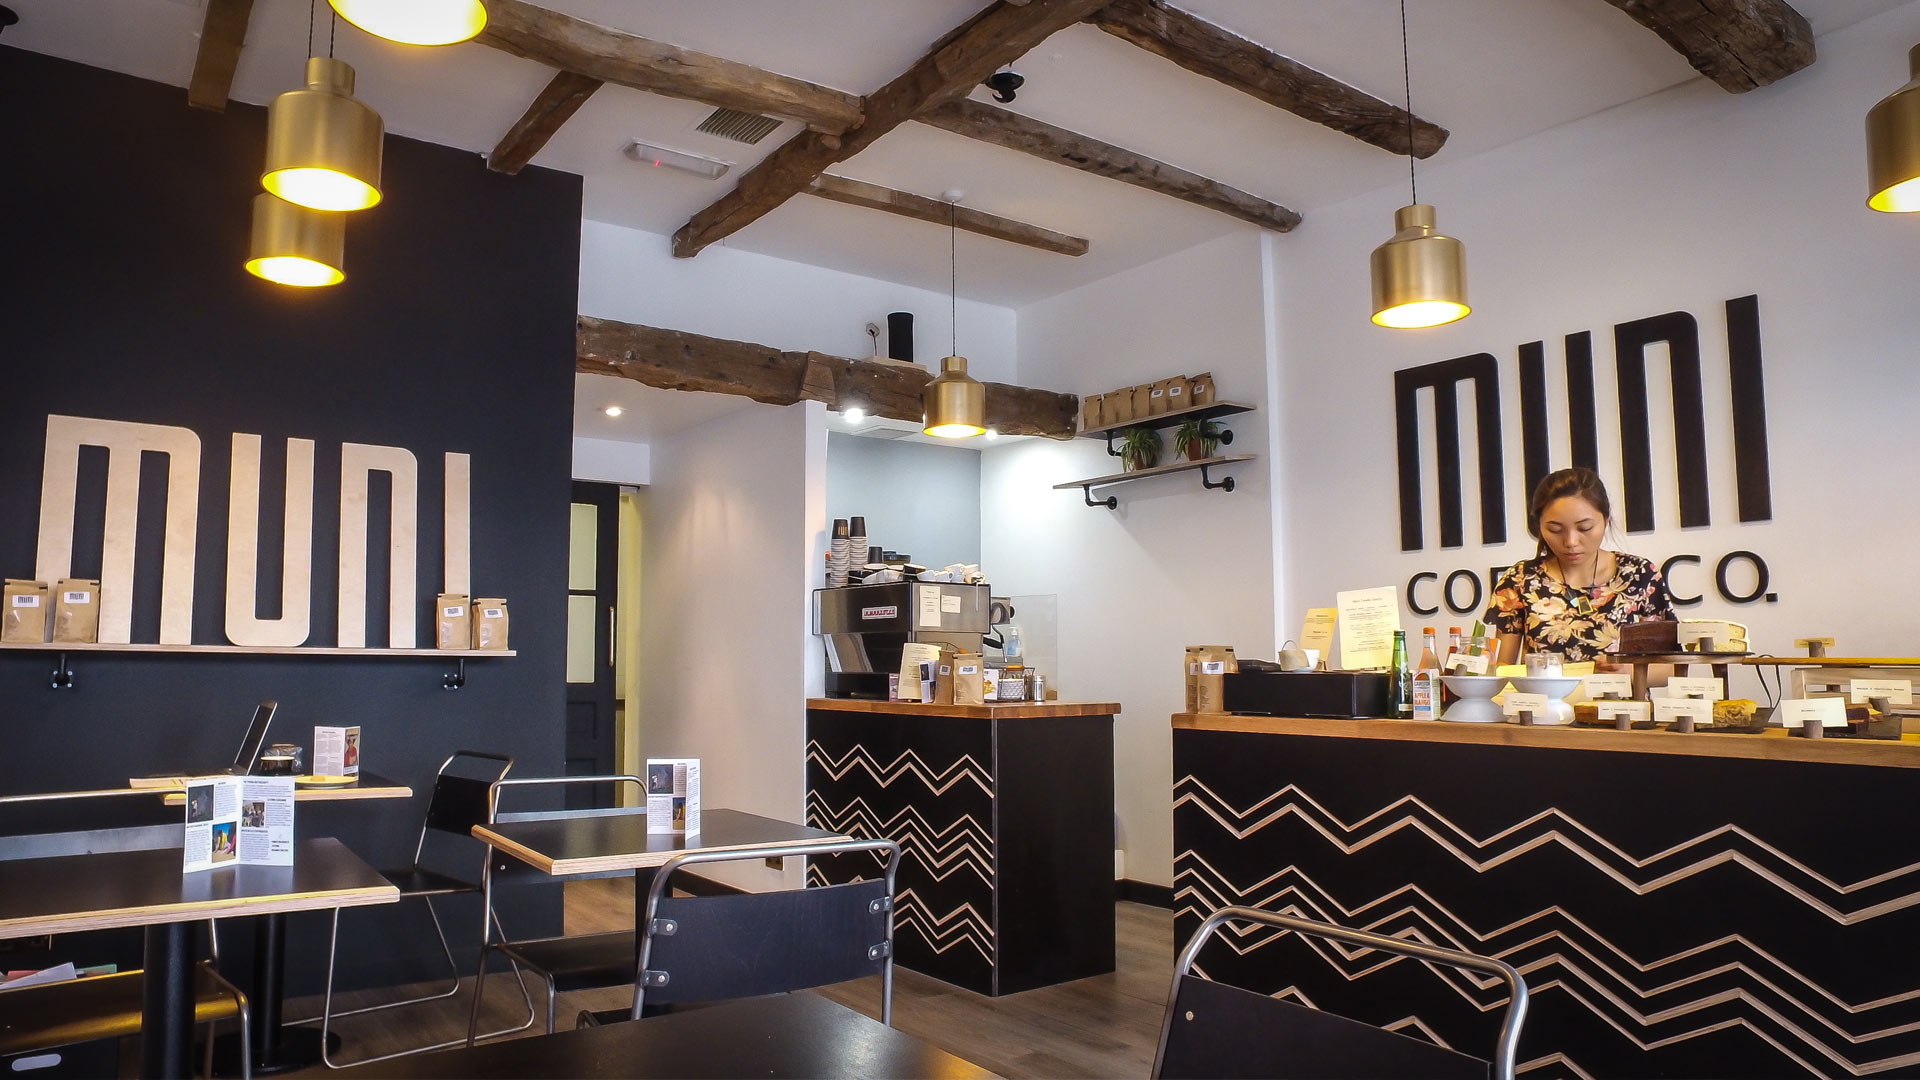 New Pictures Of Coffee Shop Interior Design   Best Home Plans and     Muni Cafe Interior Design Coffee Shop Design